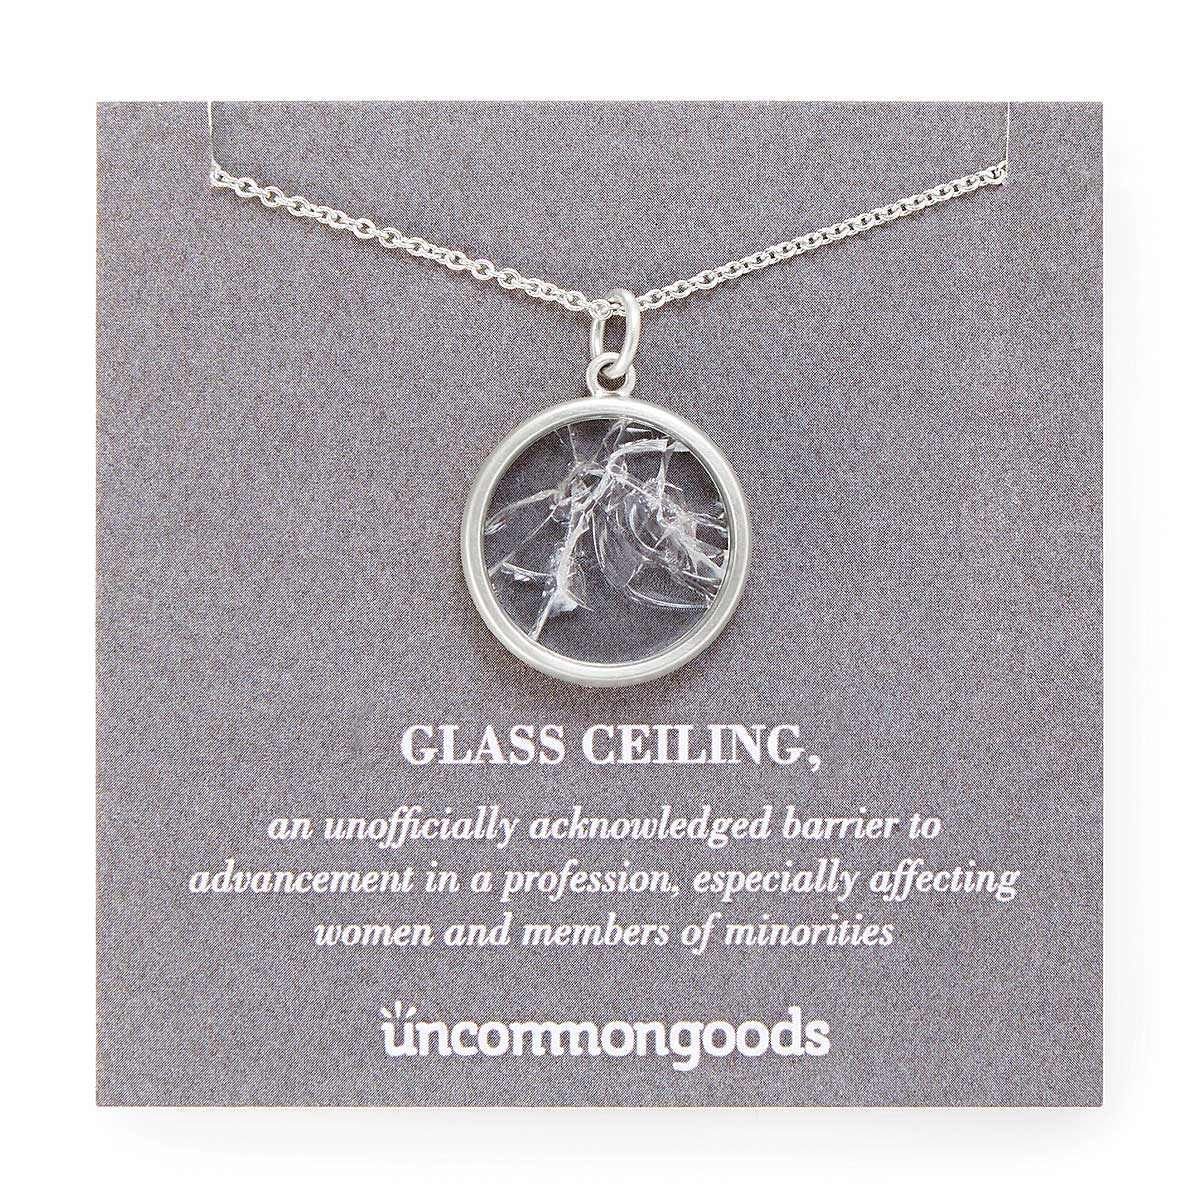 Shattered Glass Ceiling Necklace | UncommonGoods